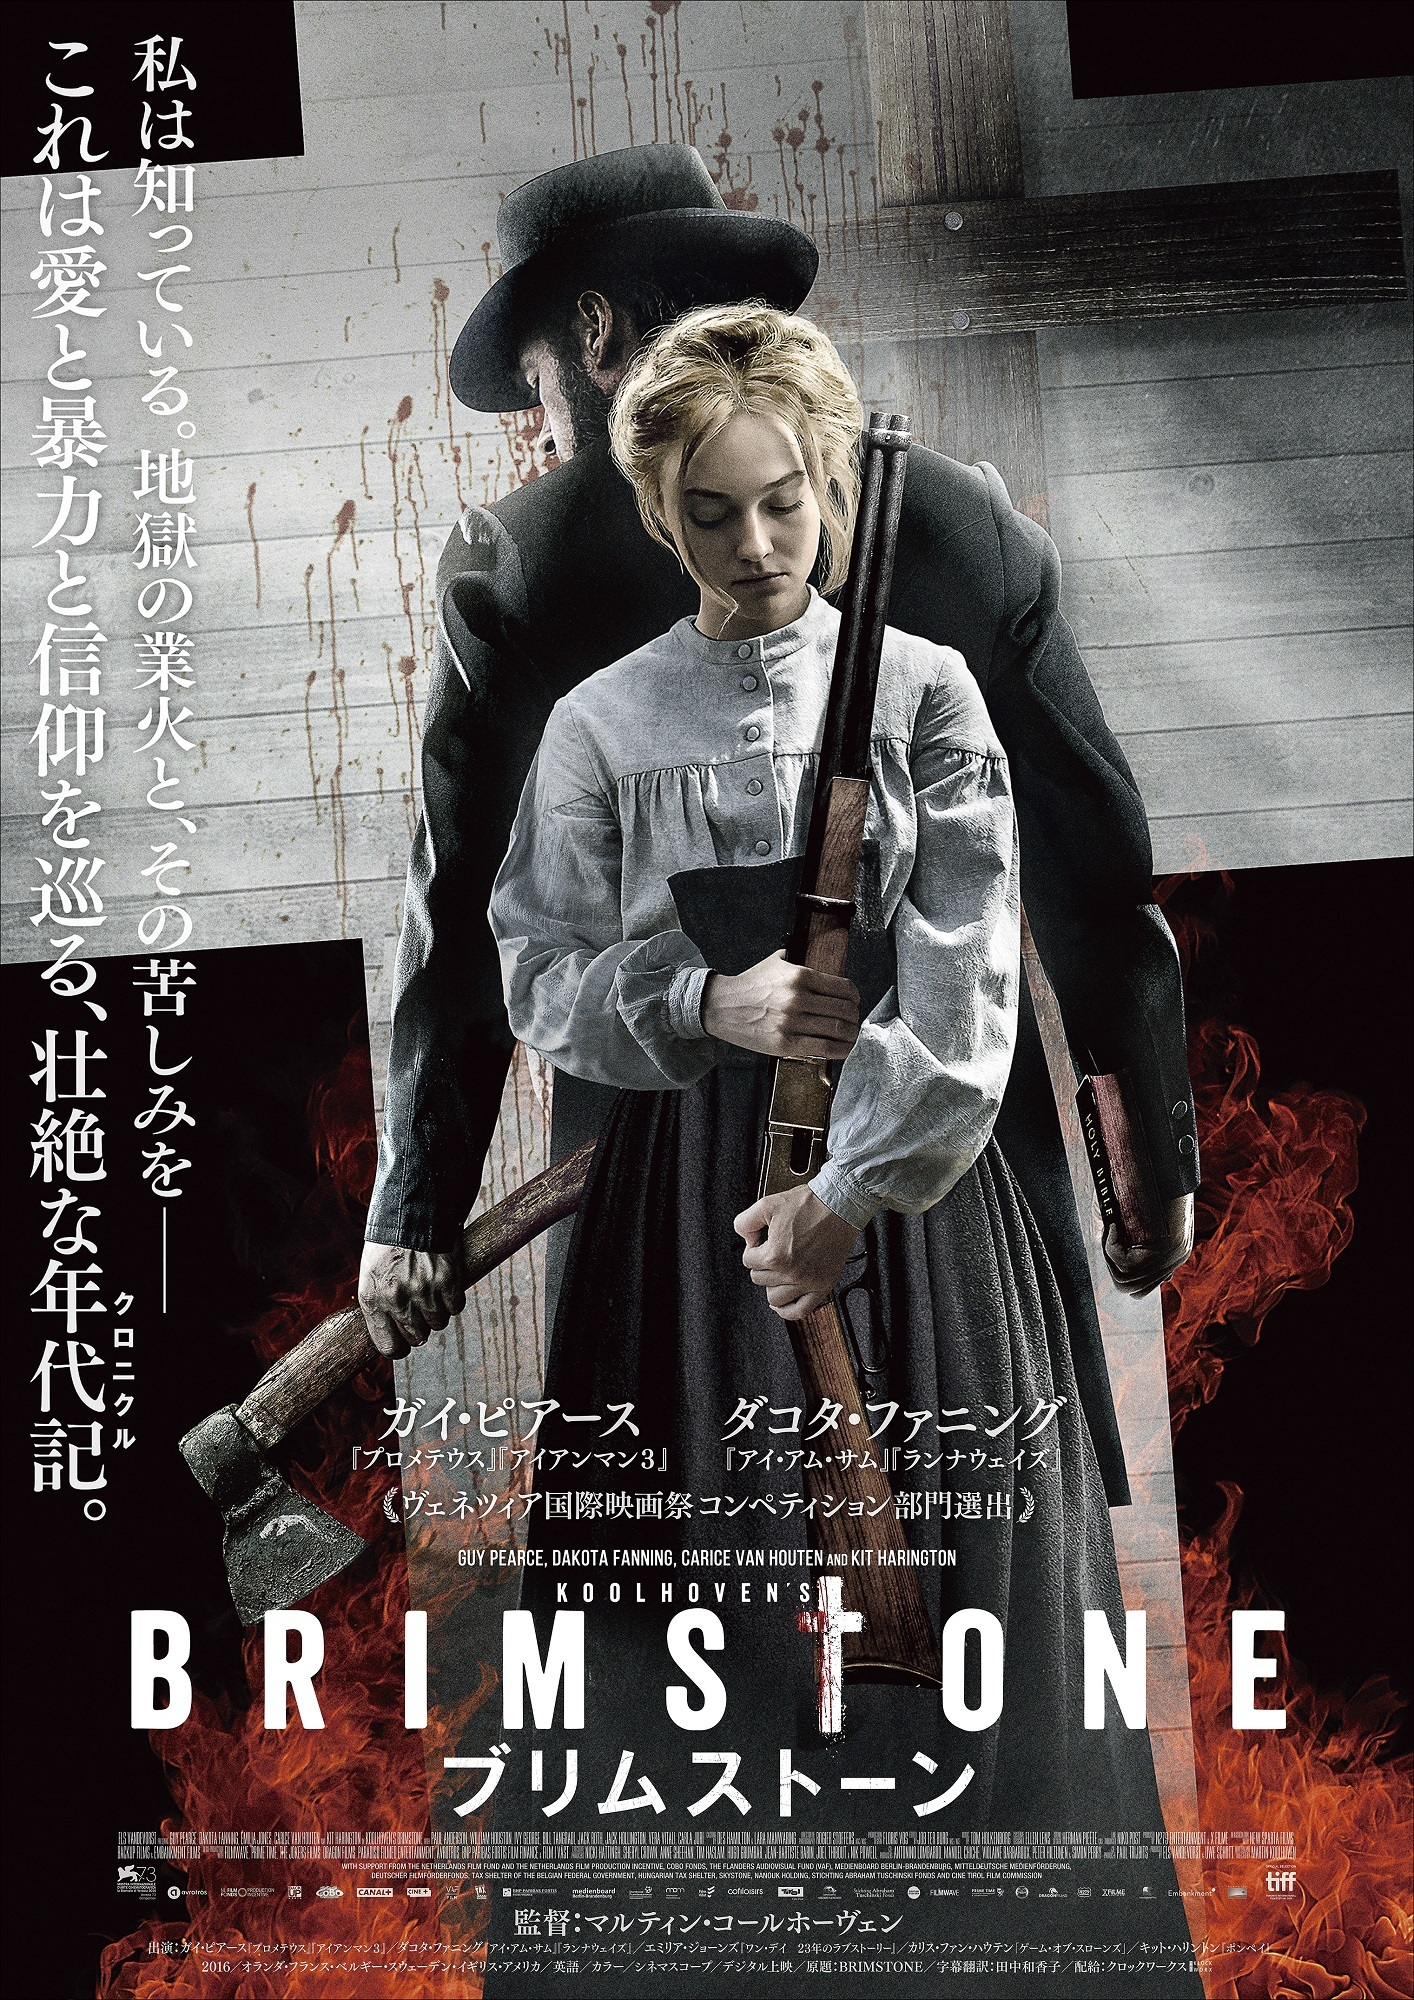 (C)2016 brimstone b.v./ n279 entertainment b.v./ x filme creative pool gmbh/ prime time/ the jokers films/ dragon films